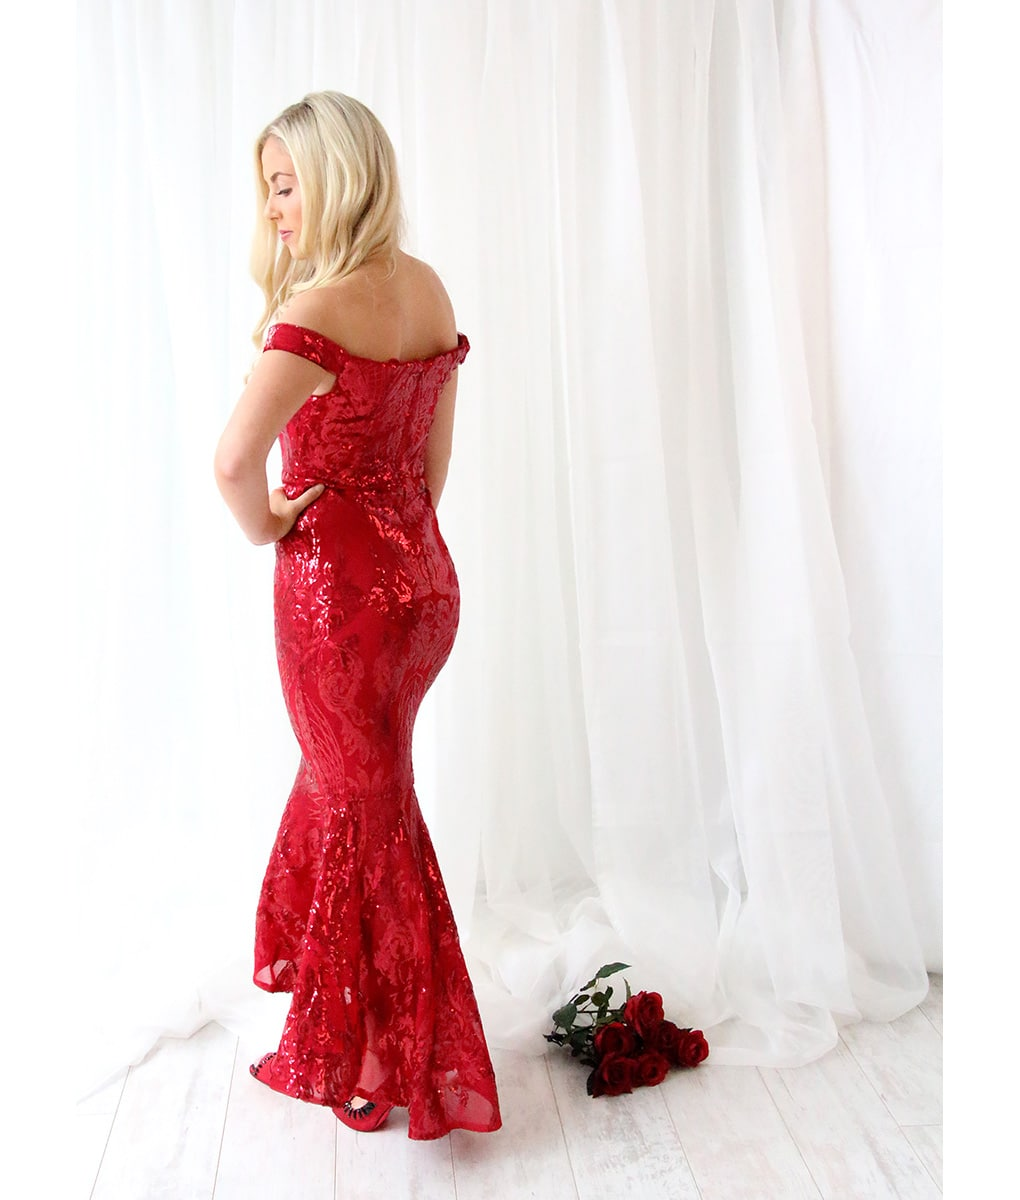 Alila-Burgundy-Sequin-Fishtail-Dress-by-Bariano-back